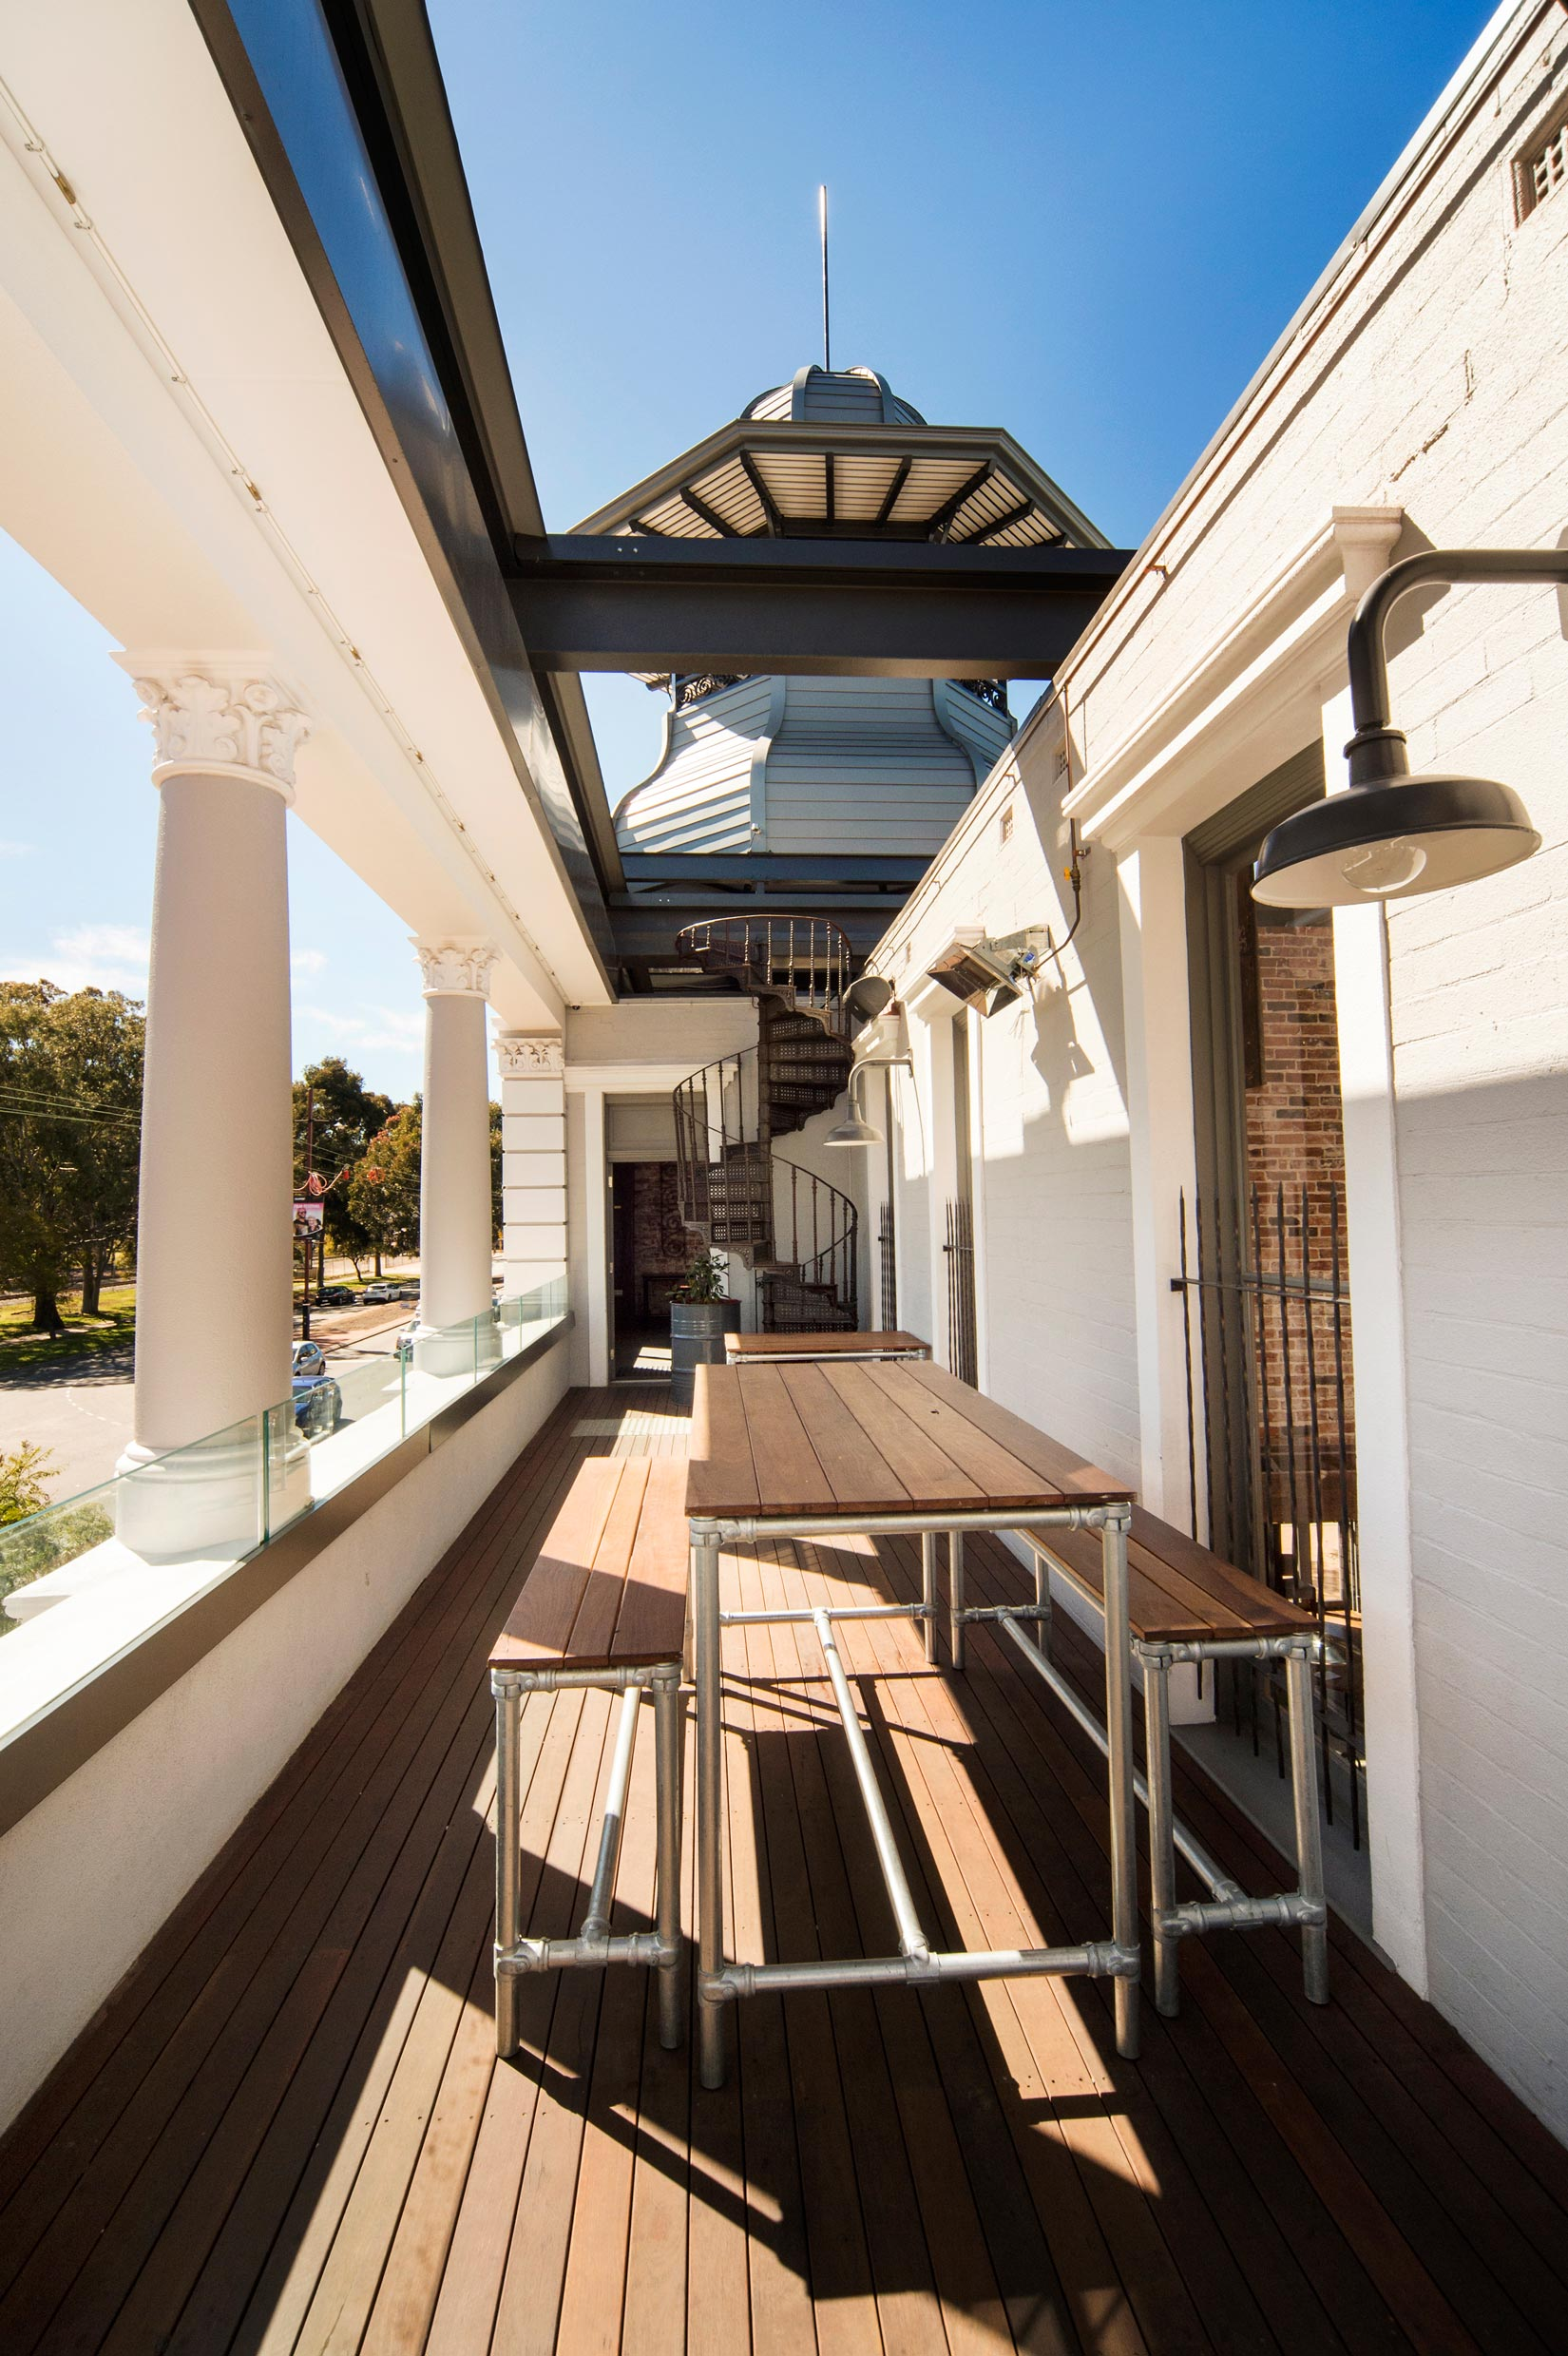 The Guildford Hotel balcony with white brickwork walls, white corinthian columns and belvedere in the background